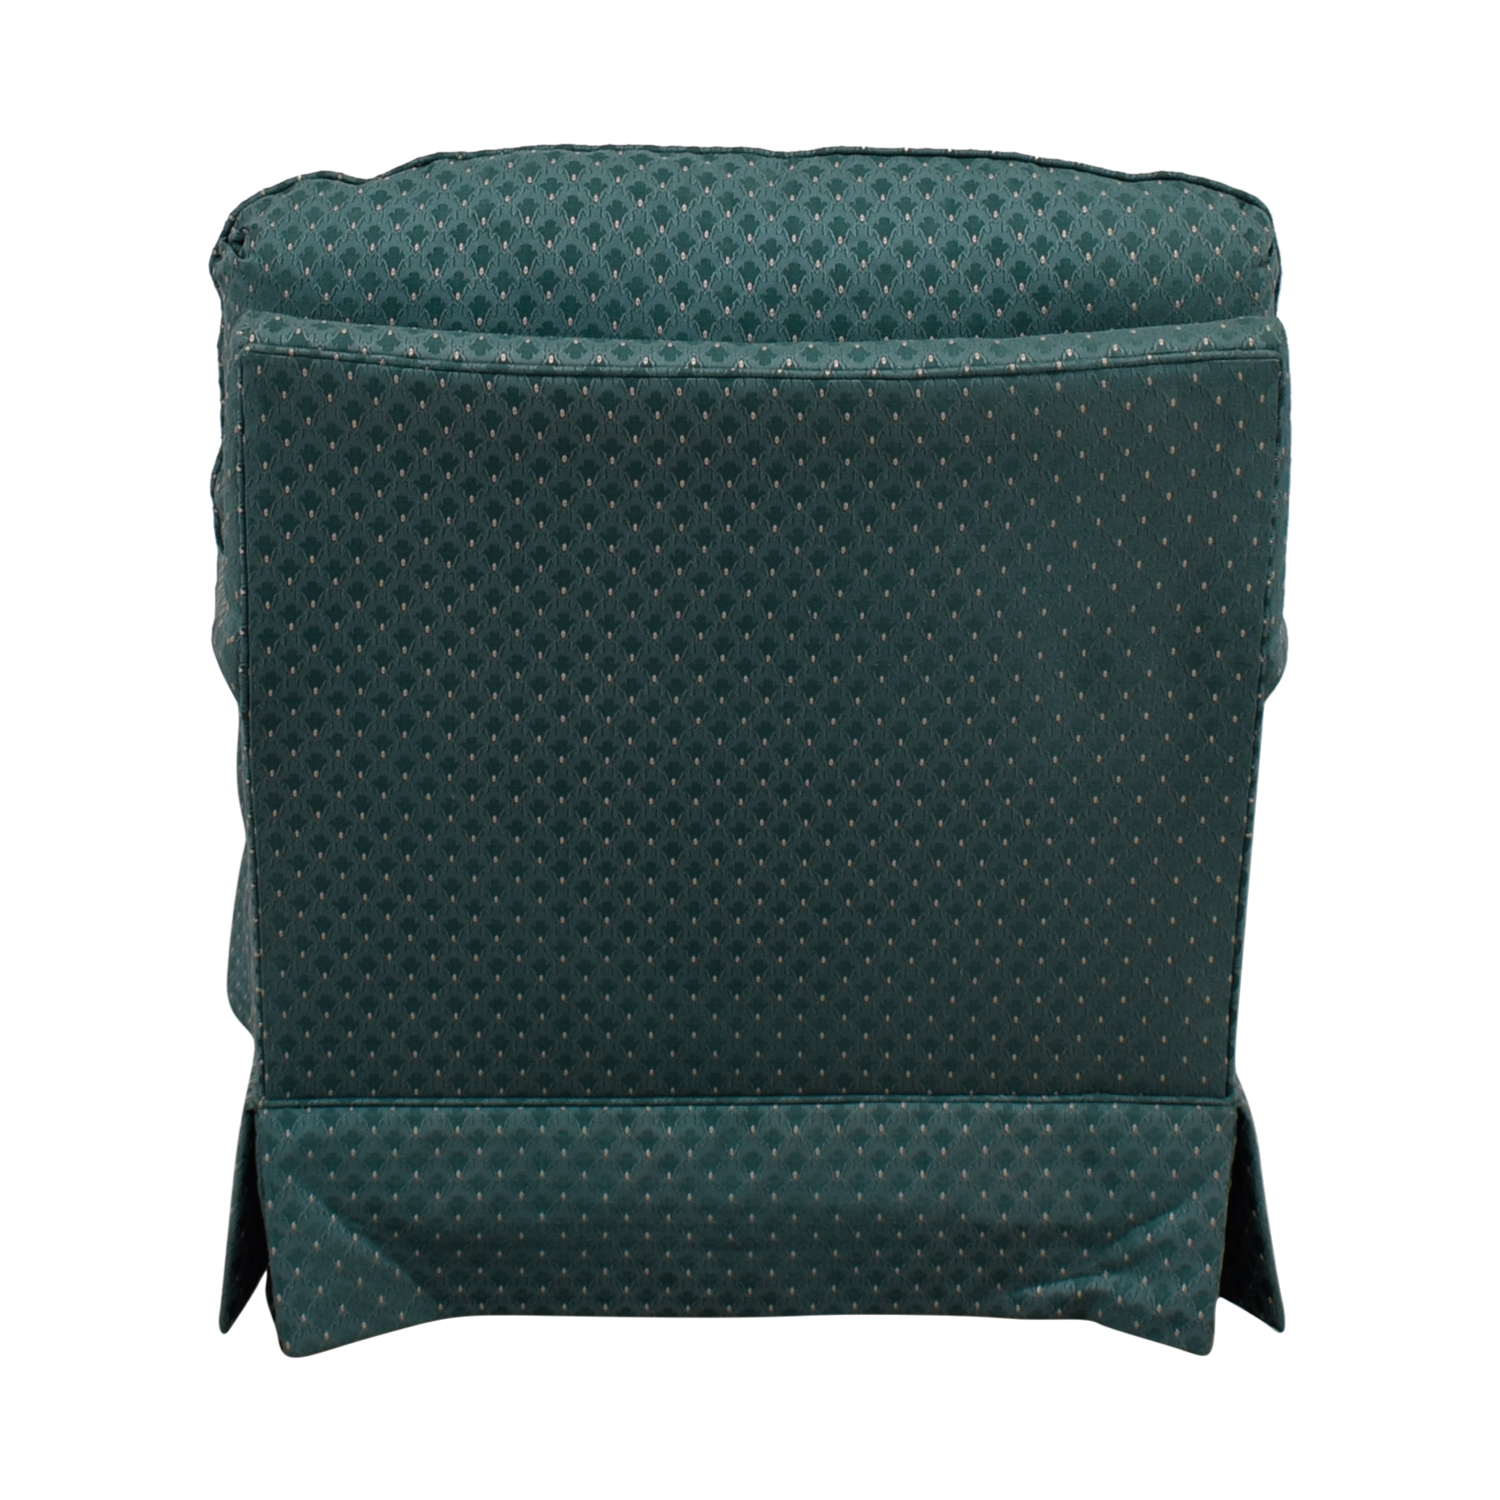 shop Thomasville Turquoise Club Chair Thomasville Chairs